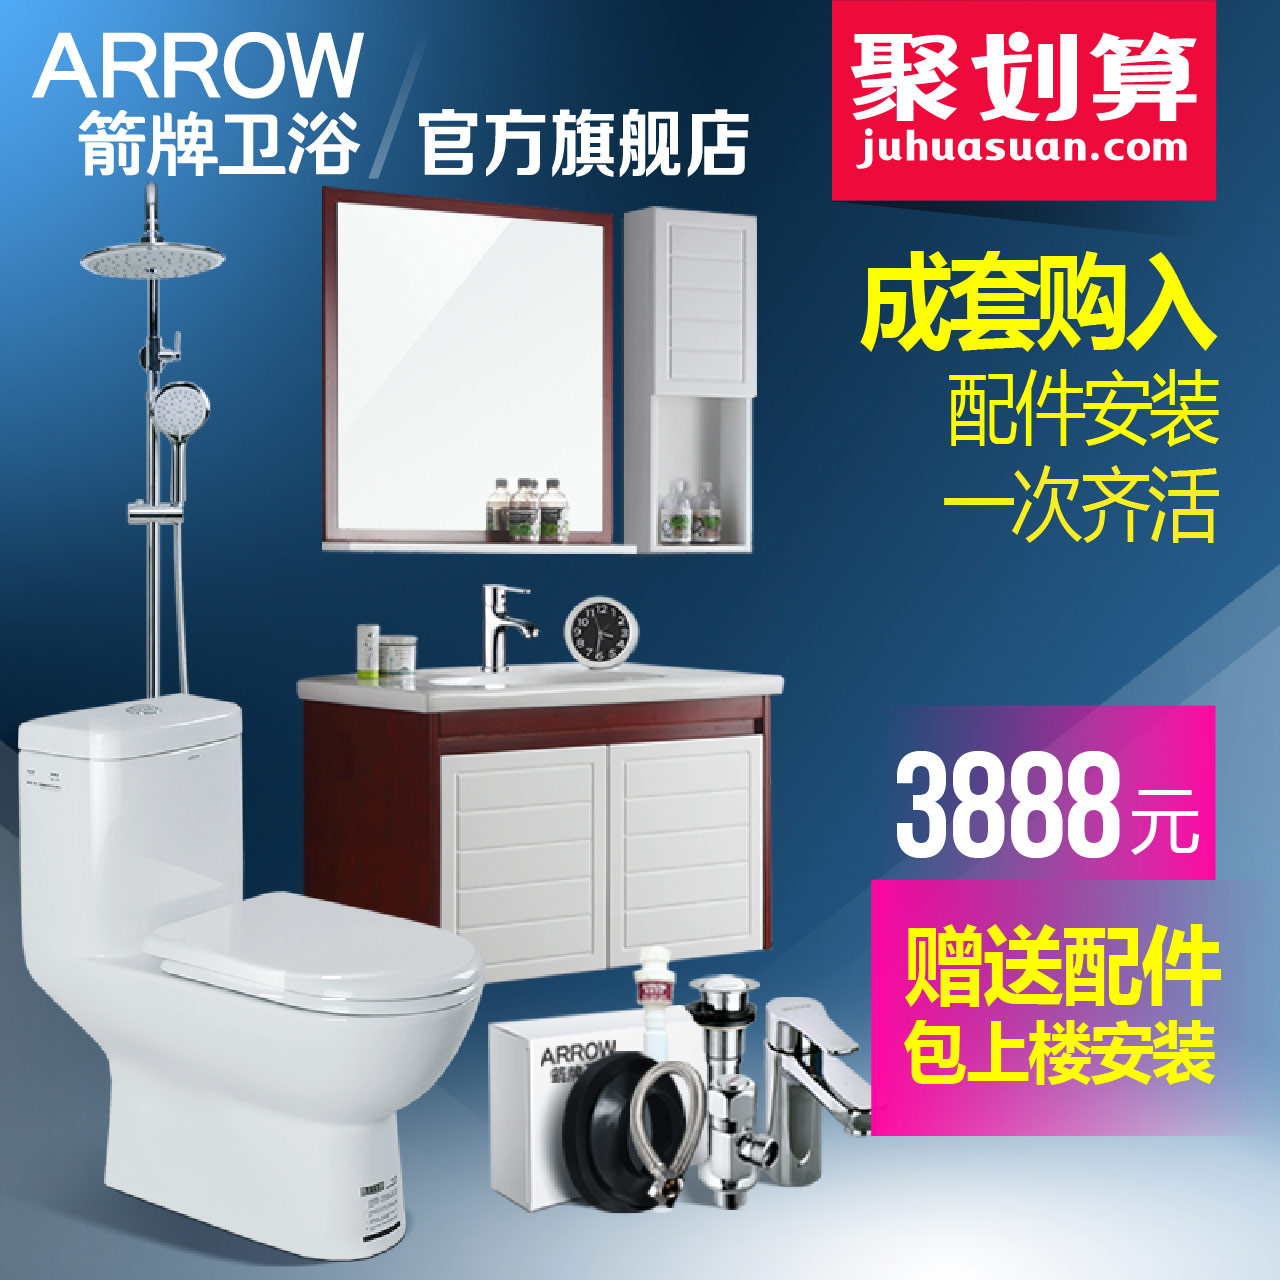 Hot bathroom cabinet wrigley wrigley bathroom combo + classic syphonage toilet + multifunction shower set